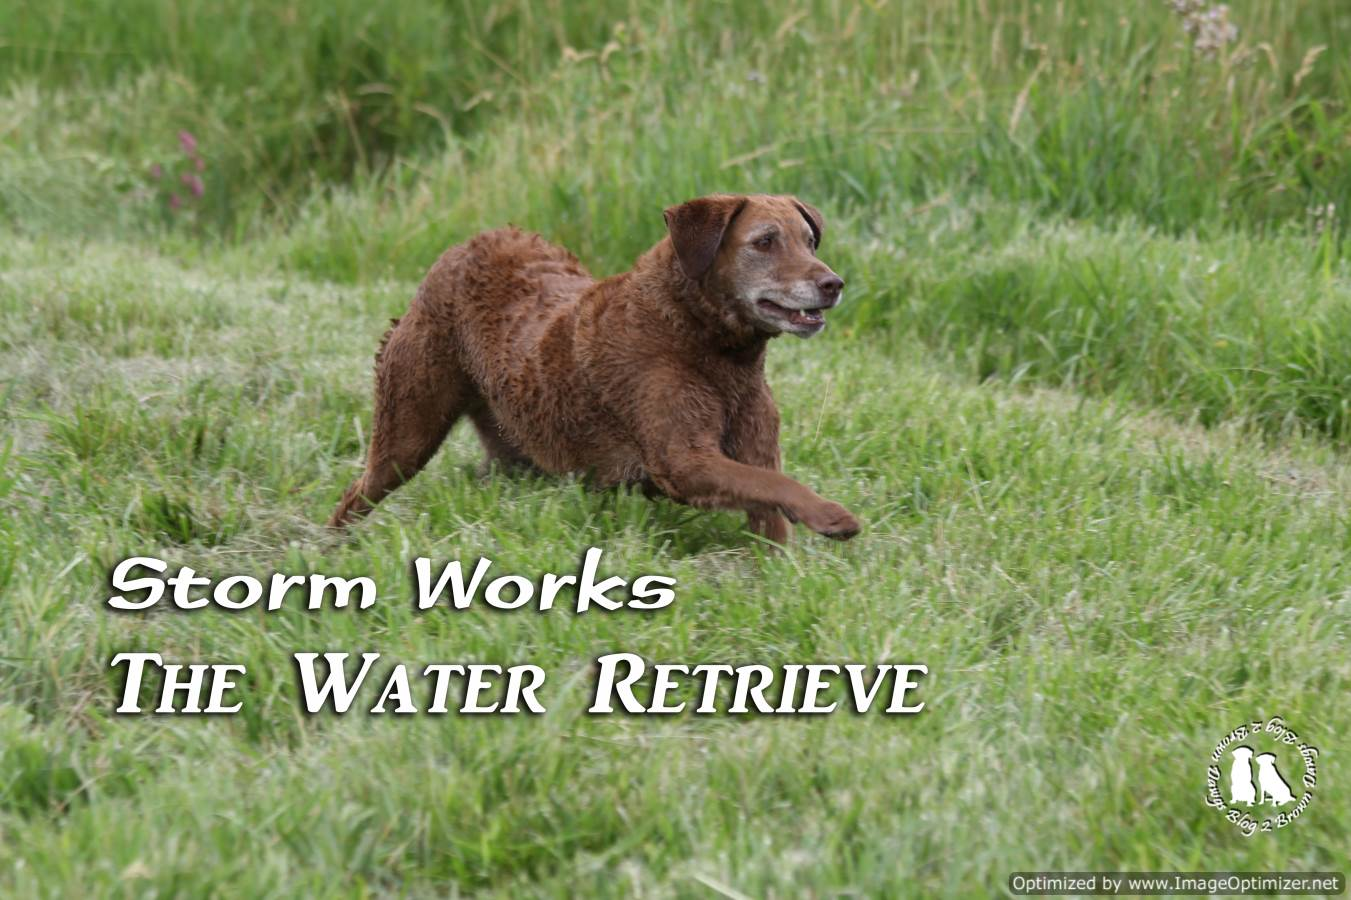 Storm Works The Water Retrieve